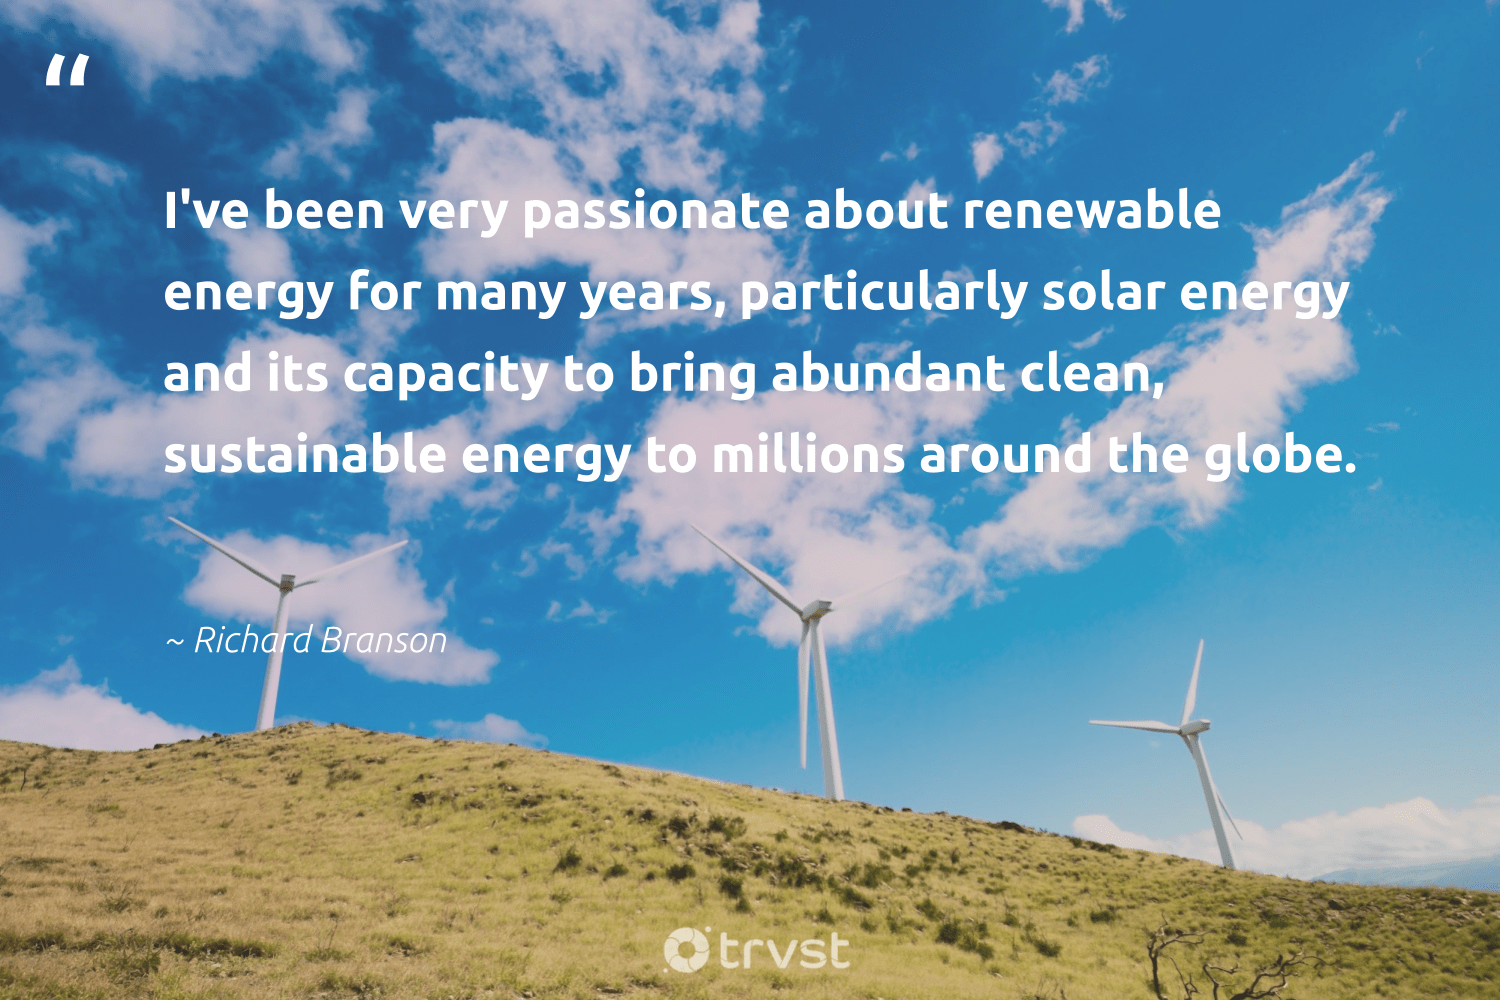 """""""I've been very passionate about renewable energy for many years, particularly solar energy and its capacity to bring abundant clean, sustainable energy to millions around the globe.""""  - Richard Branson #trvst #quotes #renewableenergy #sustainable #energy #renewable #solar #solarenergy #switchfuelenergy #affordable #globalwarming #environment"""